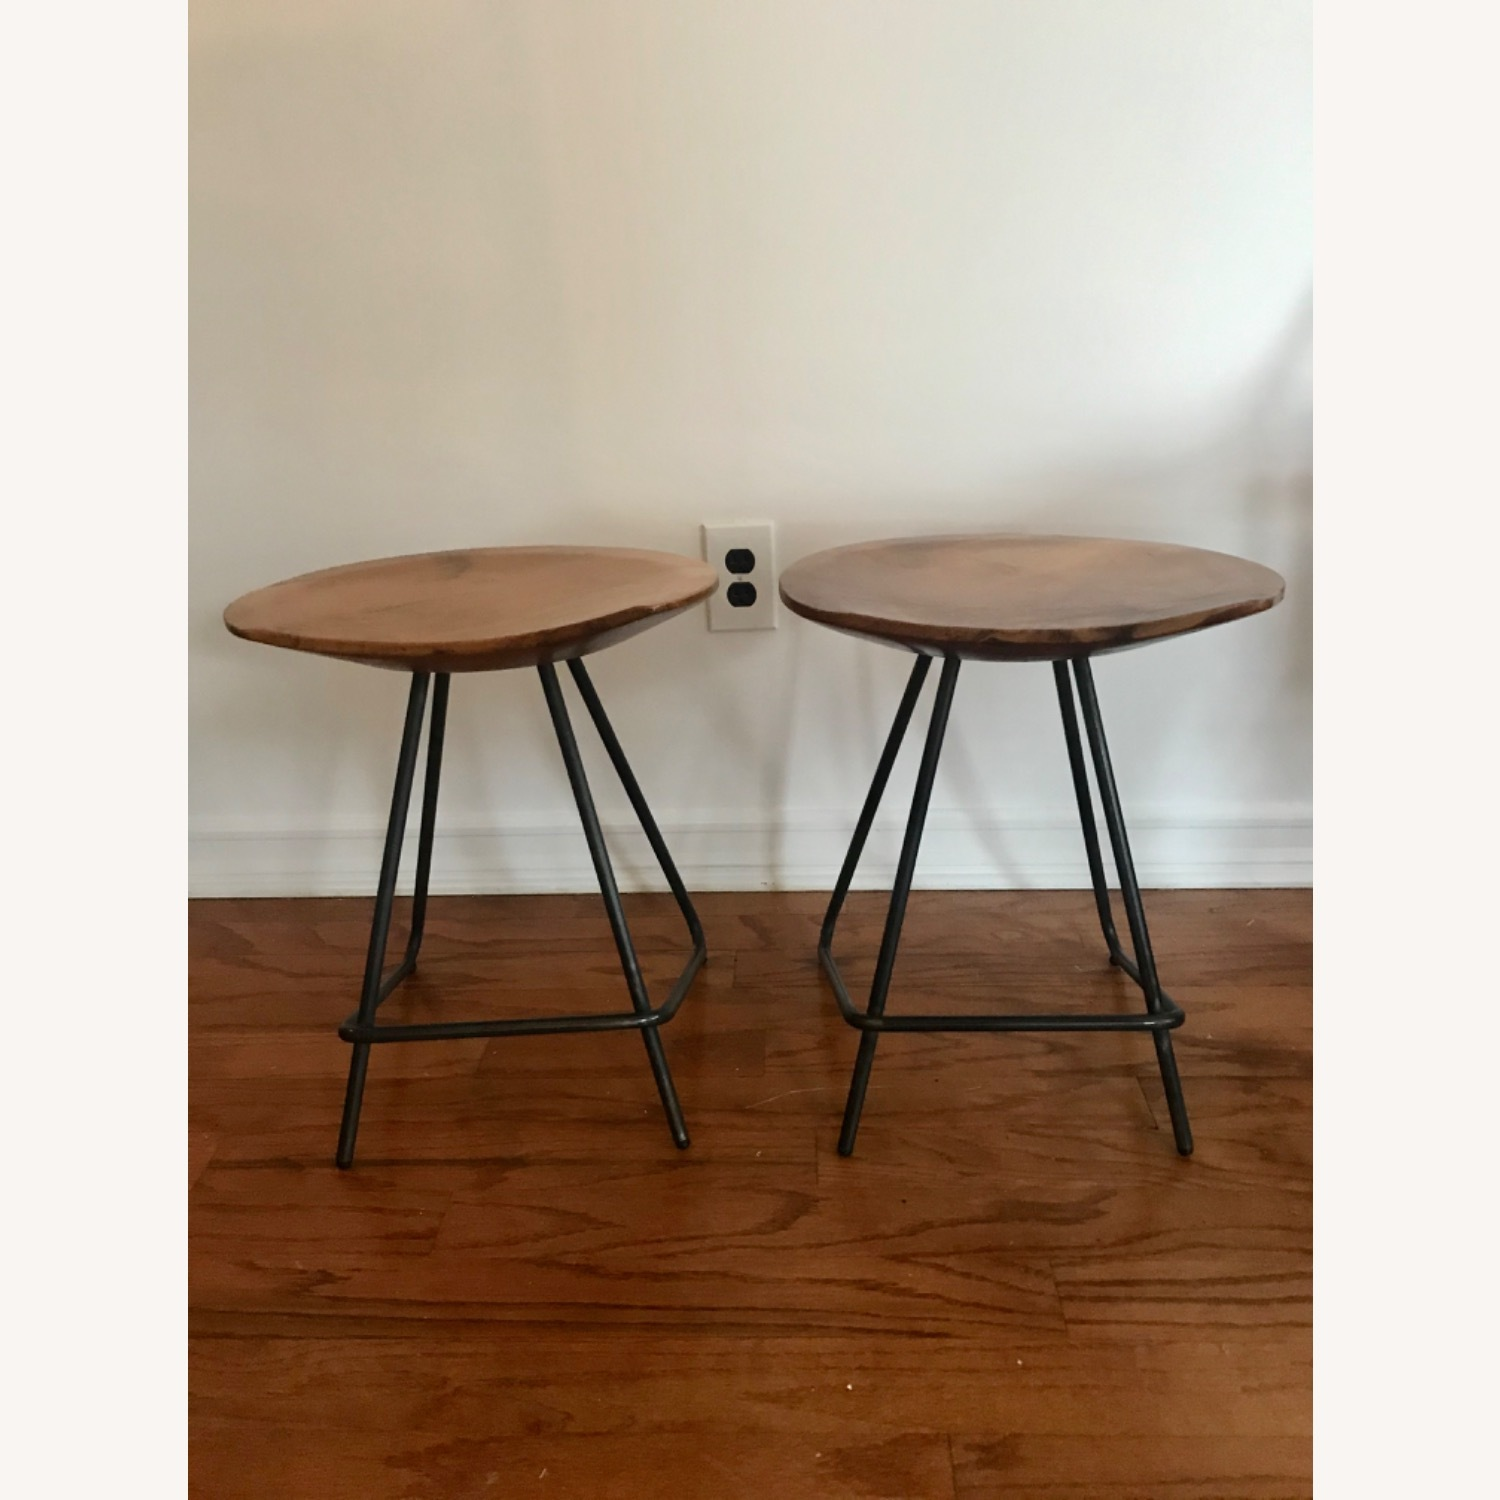 From The Source Solid Teak Stools - image-1